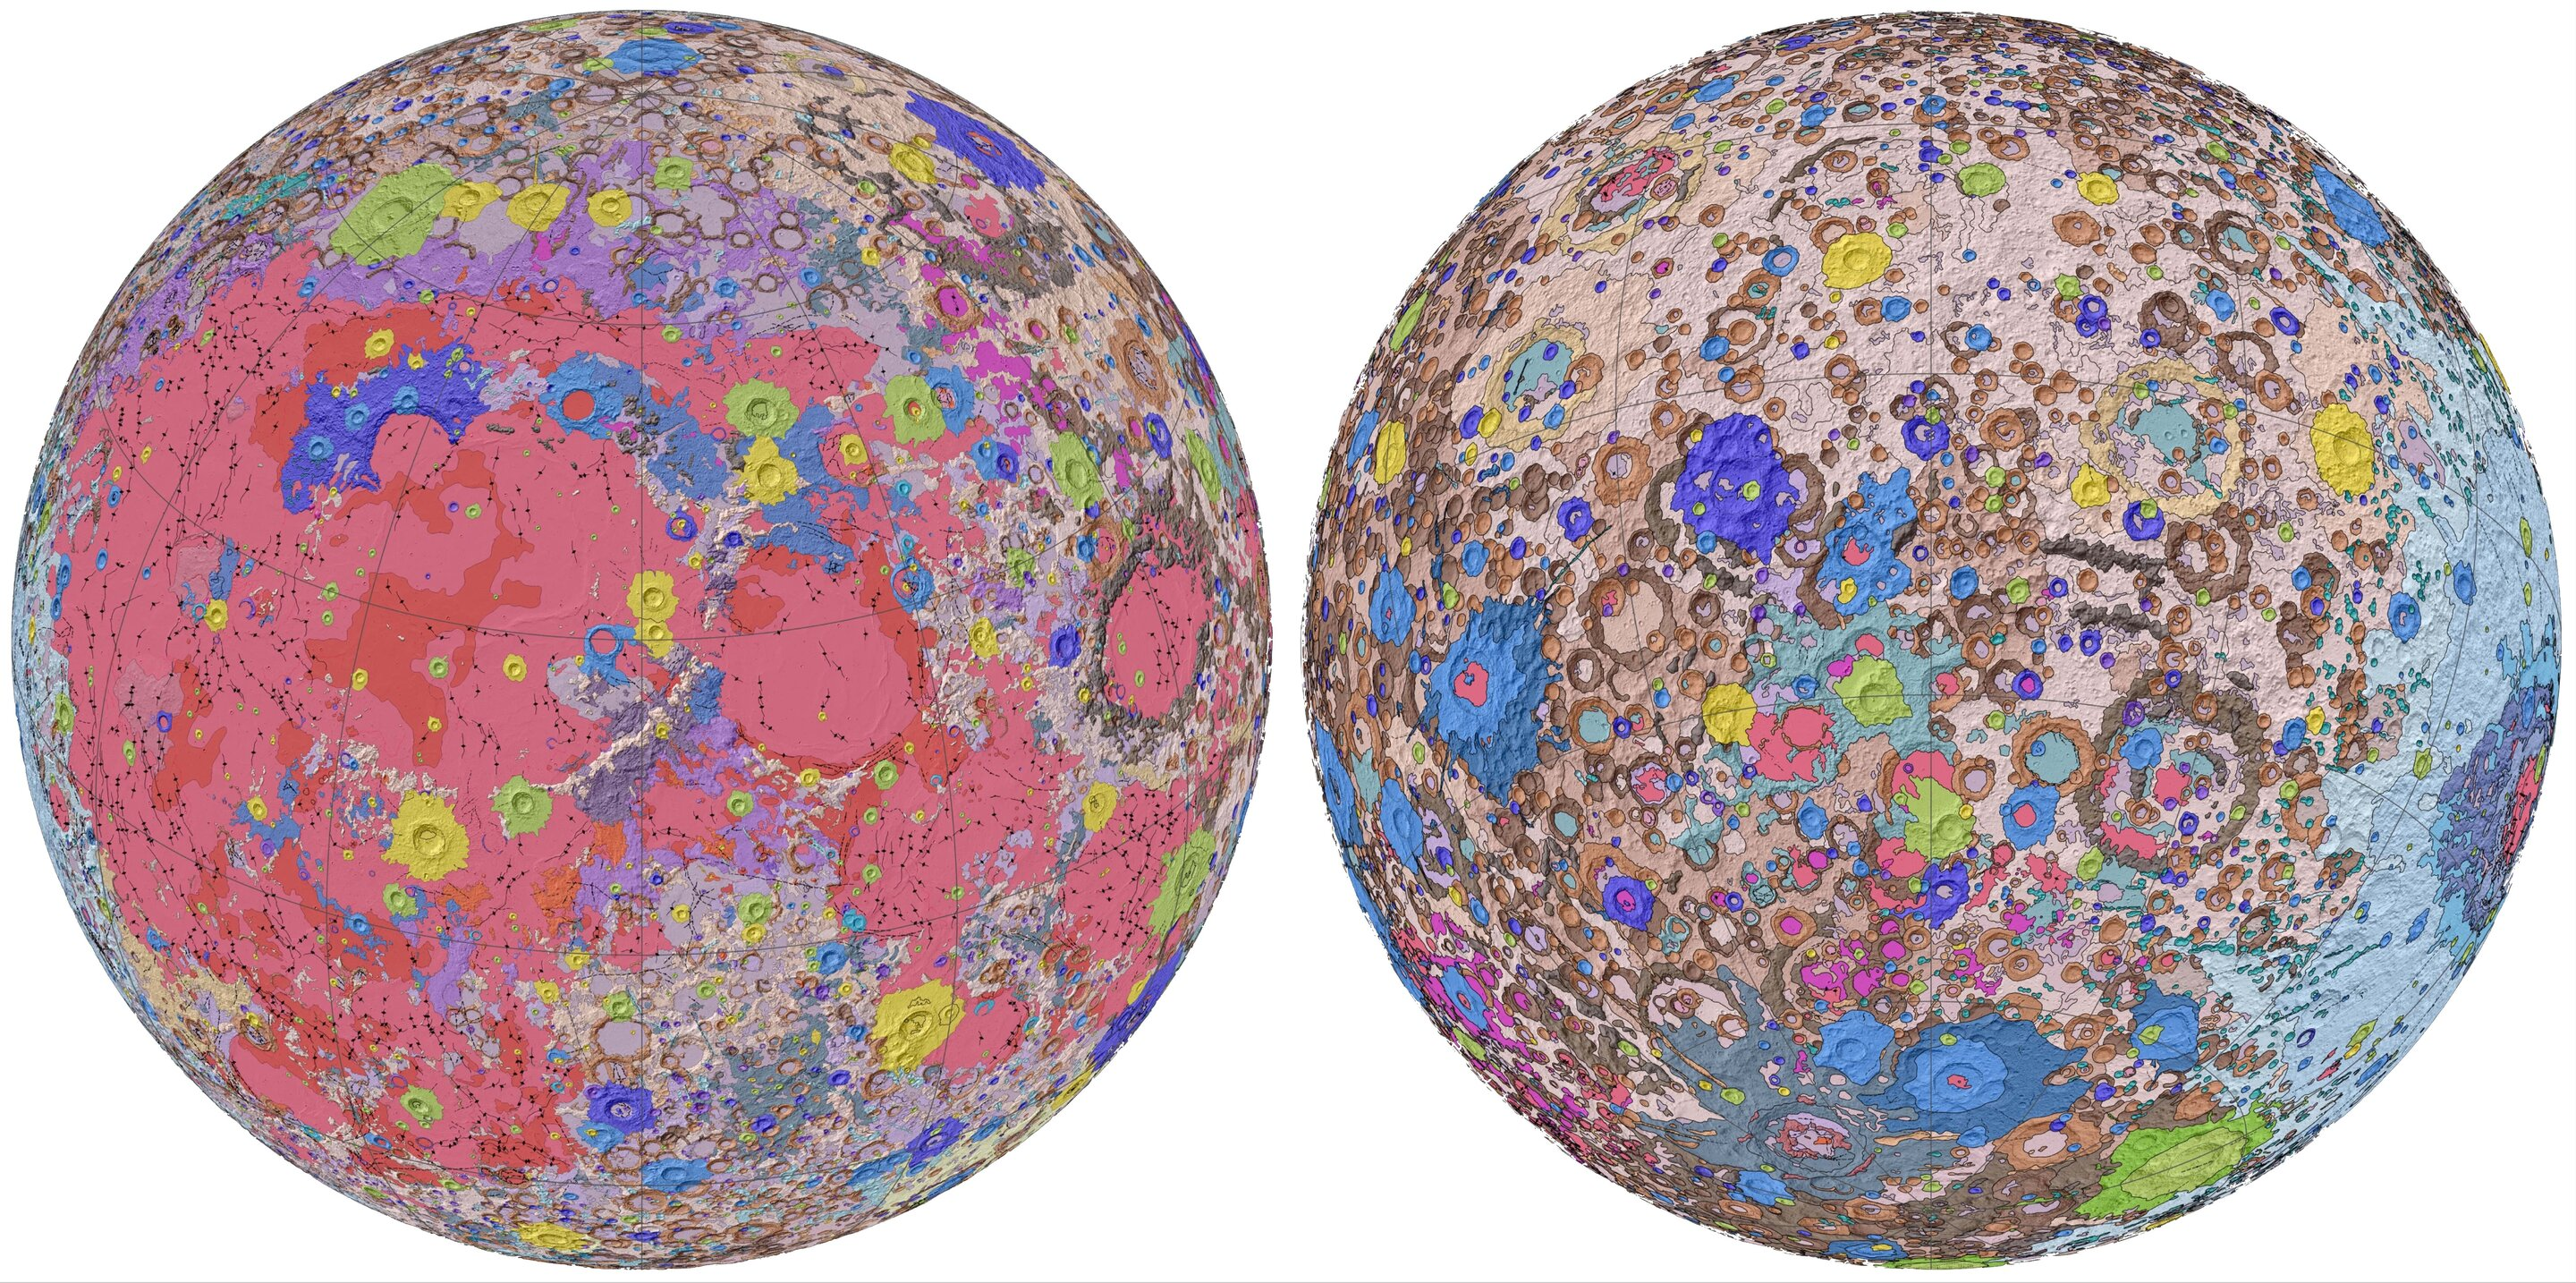 USGS releases first-ever comprehensive geologic map of the Moon